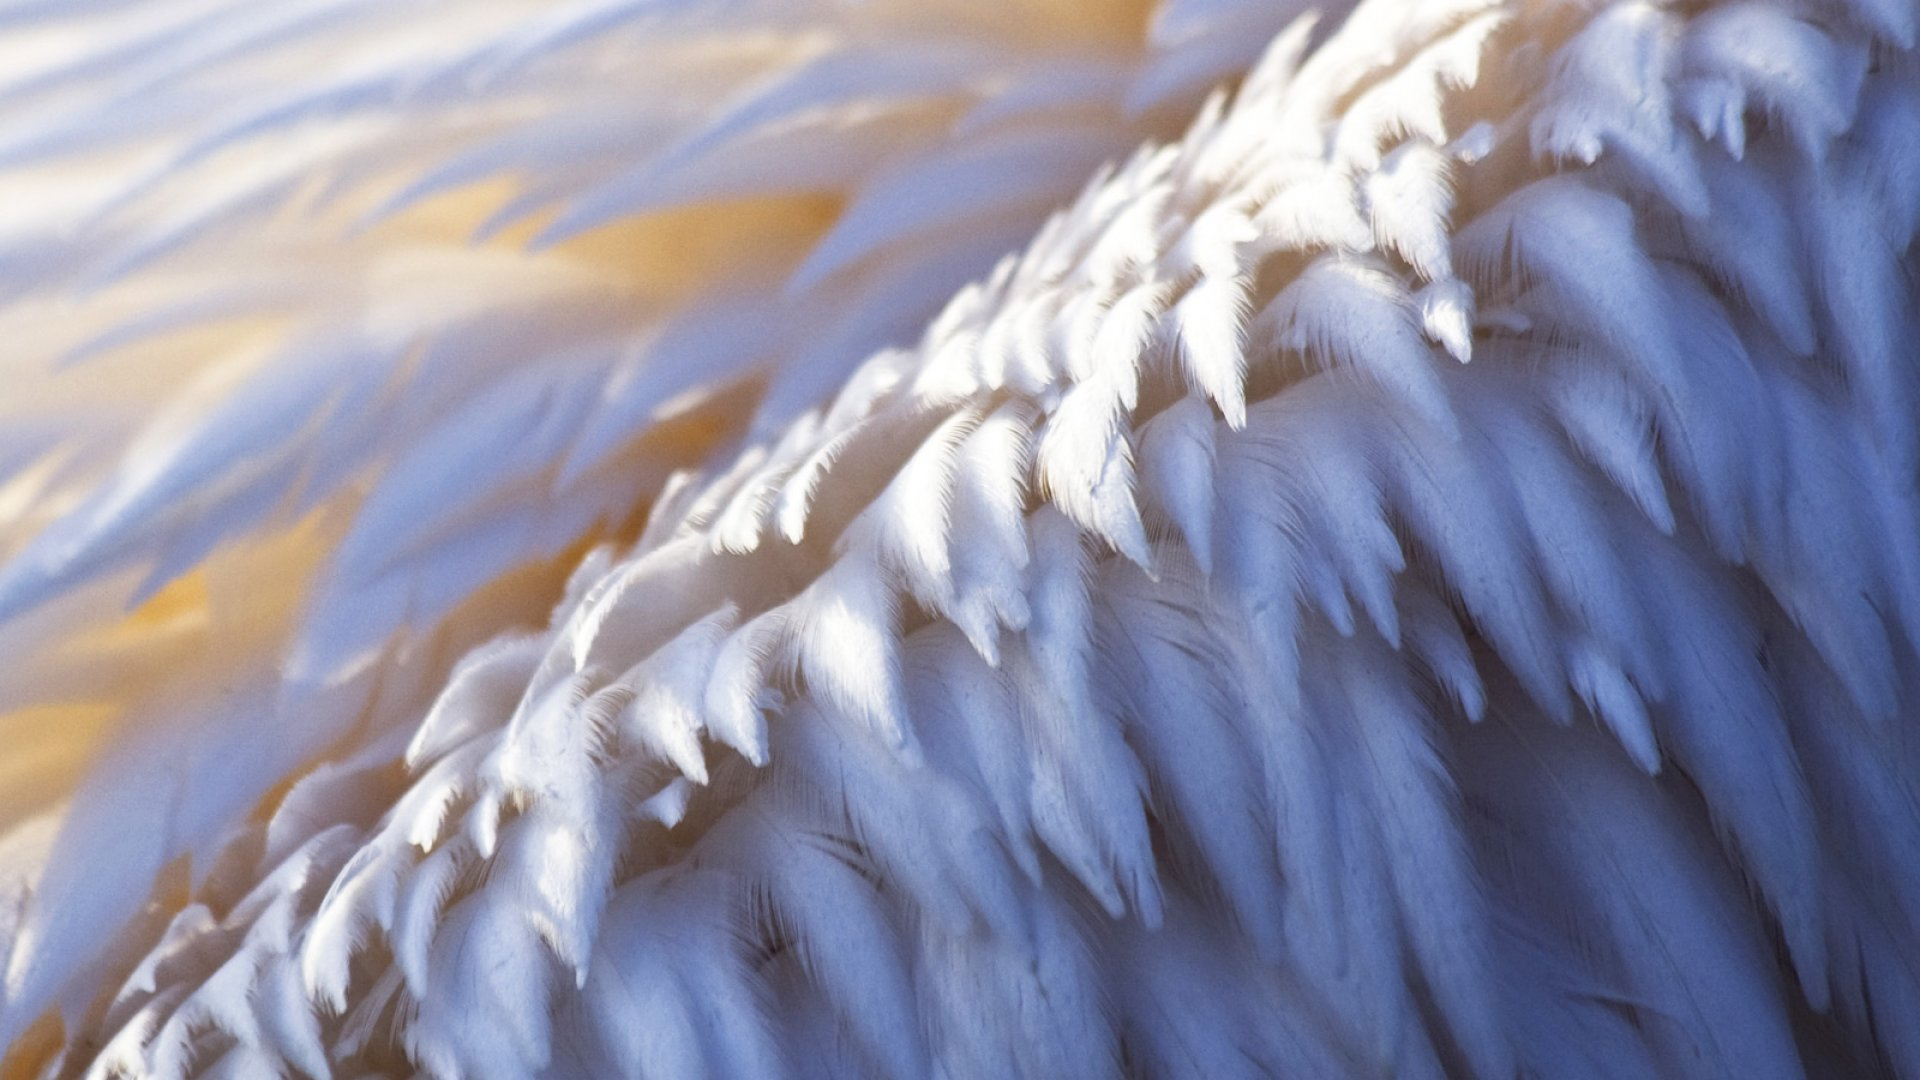 15 of the Biggest Angel Investors of All Time